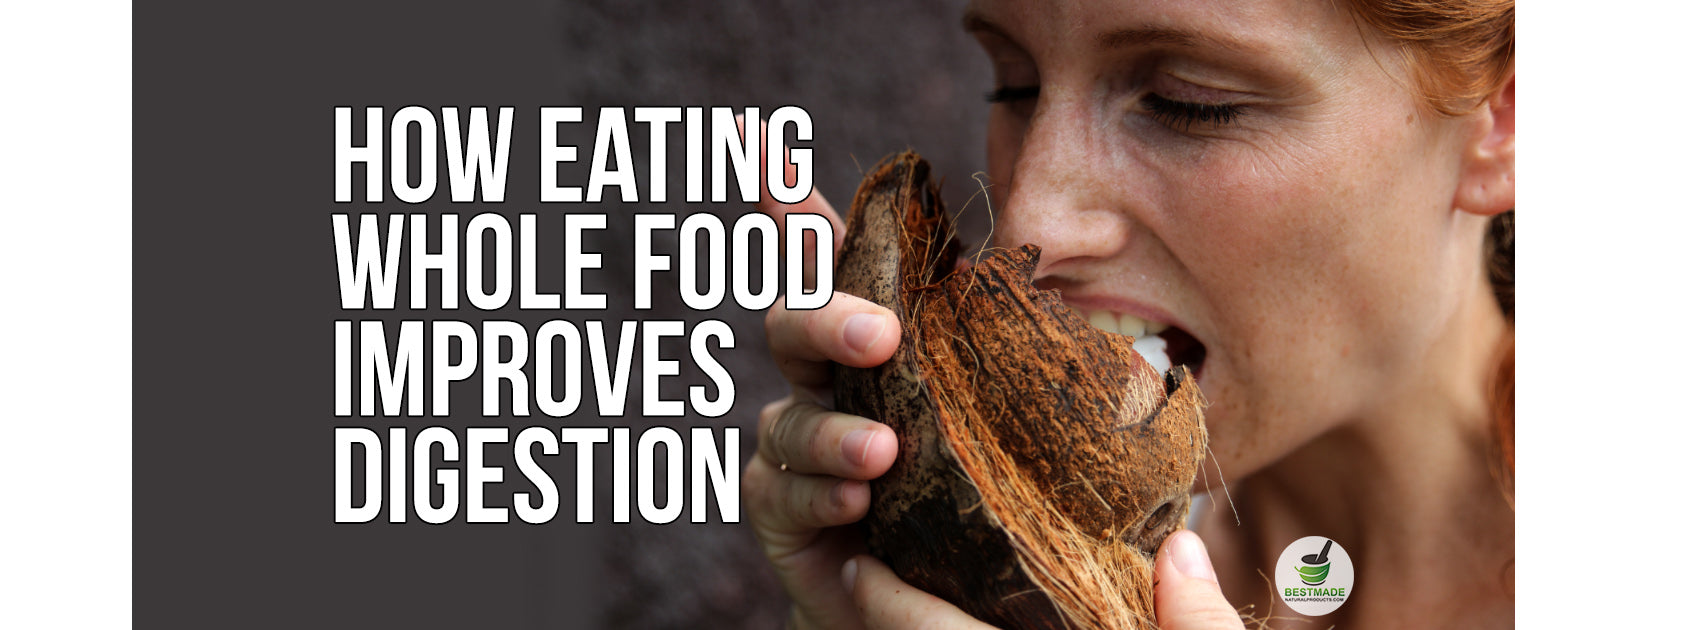 How Eating Whole Food Improves Digestion